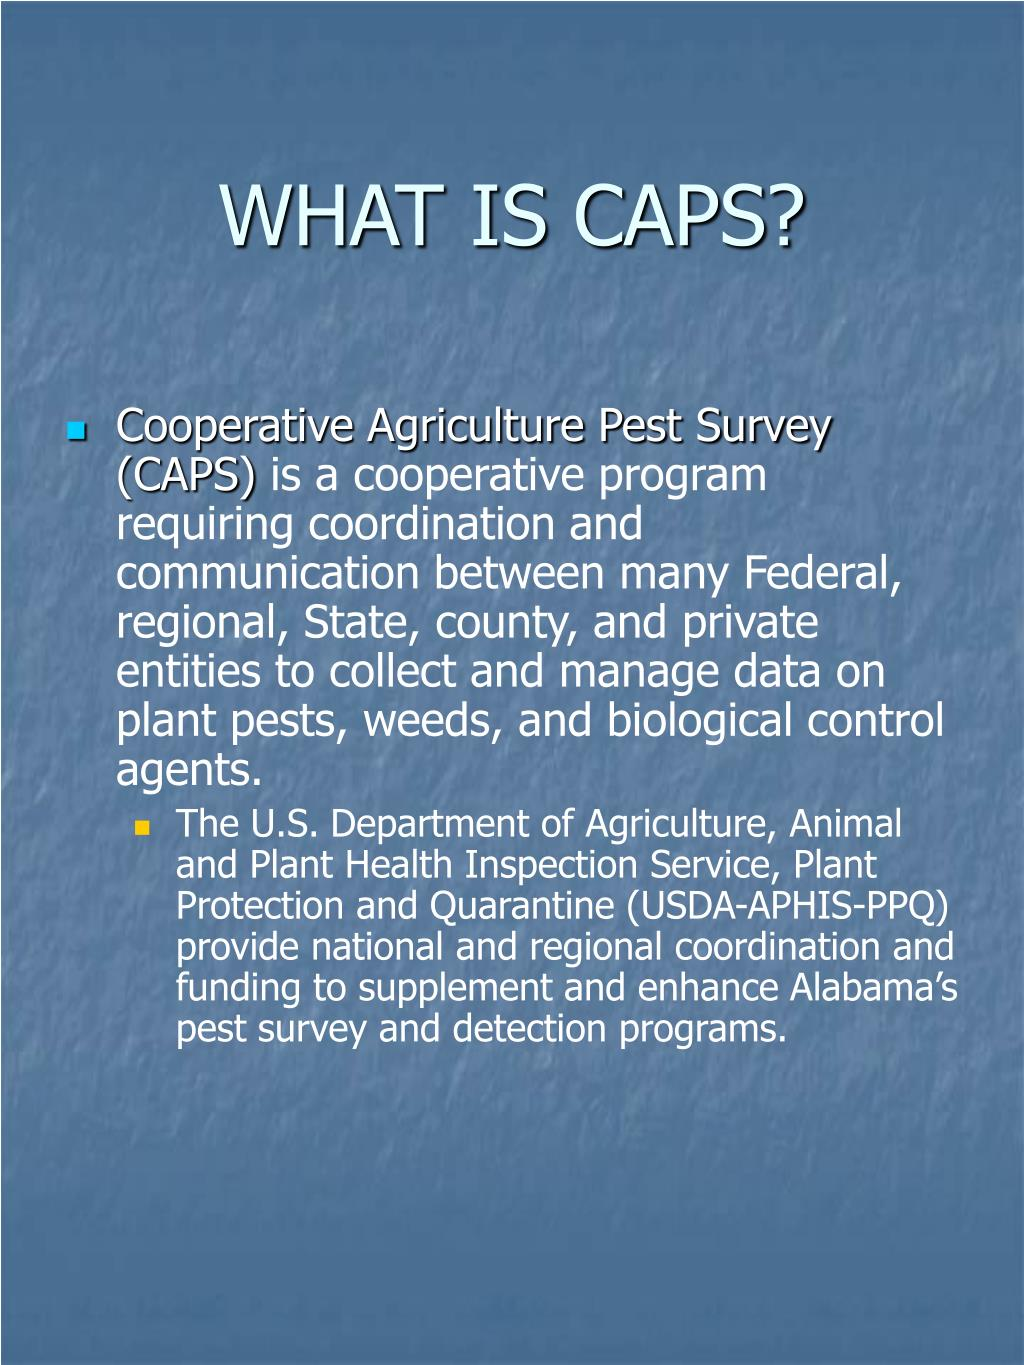 WHAT IS CAPS?